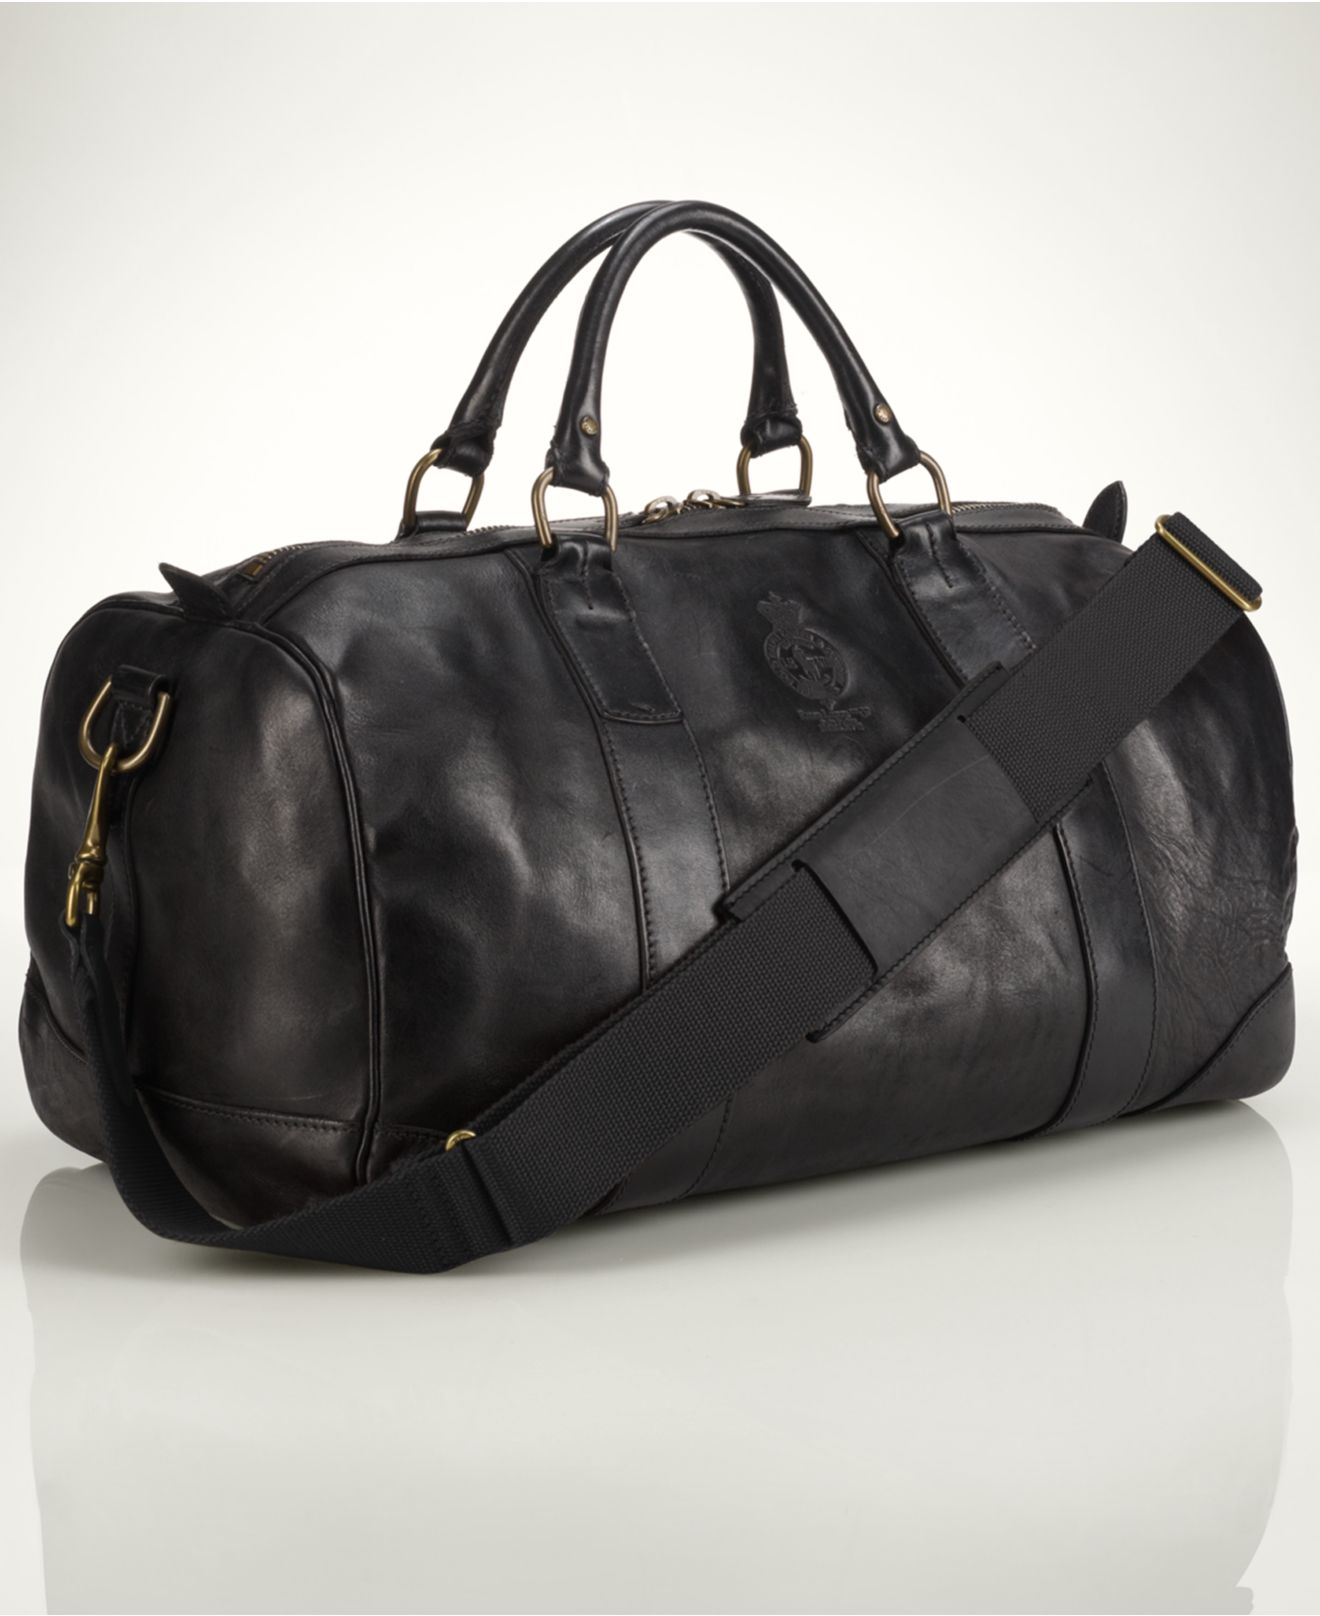 038987438f Lyst - Polo Ralph Lauren Core Leather Gym Bag in Black for Men